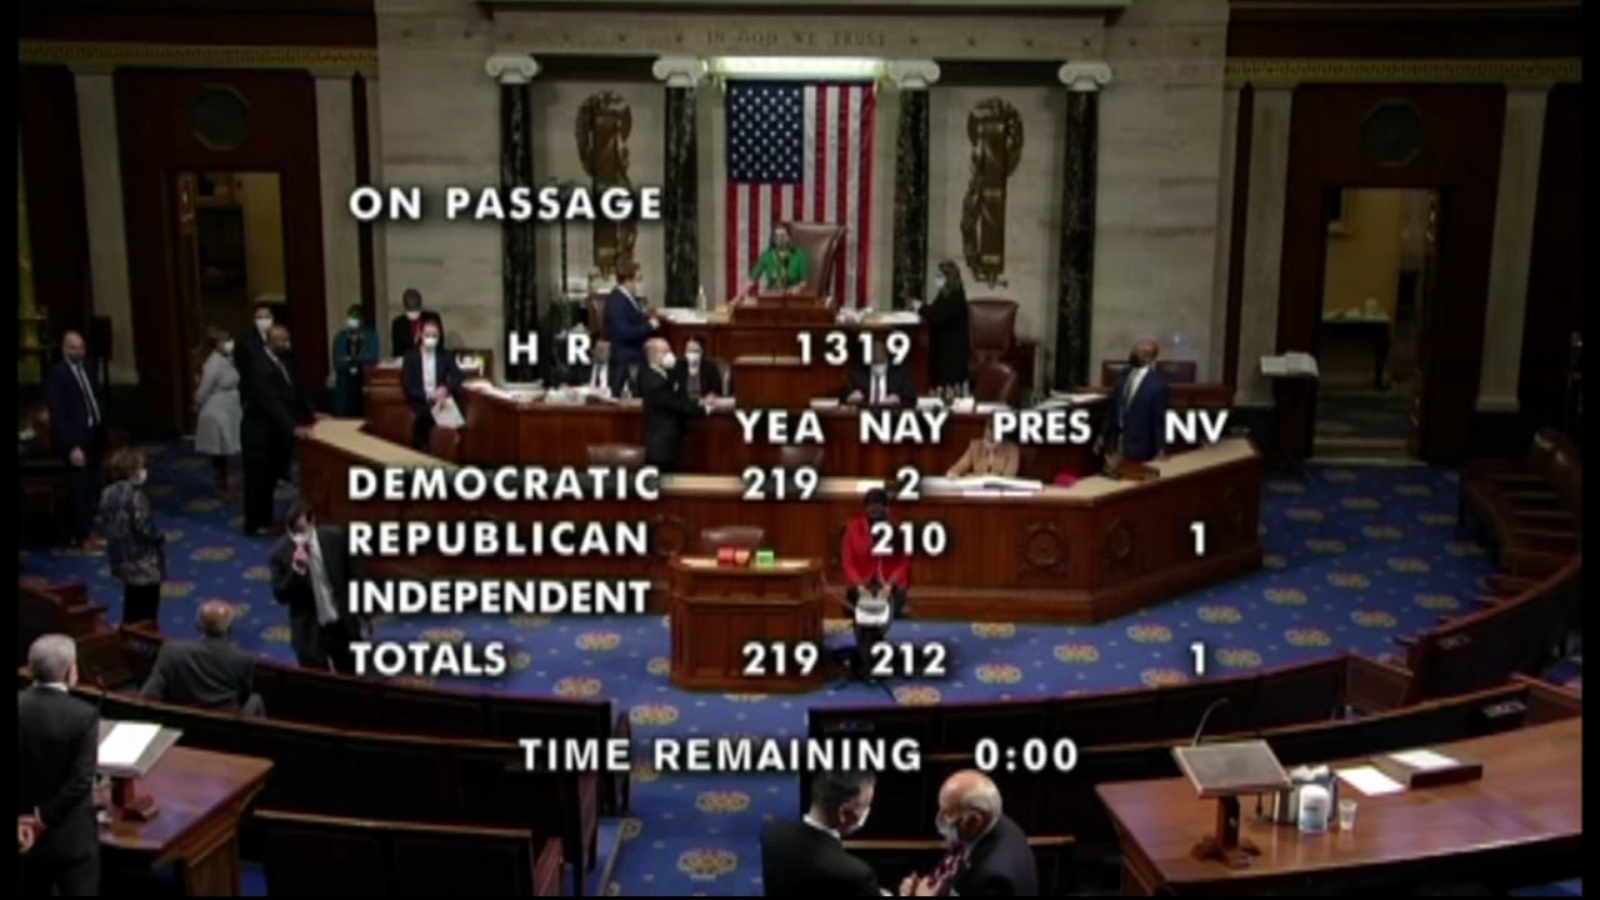 House passes .9T COVID relief bill on near party-line vote, includes stimulus checks